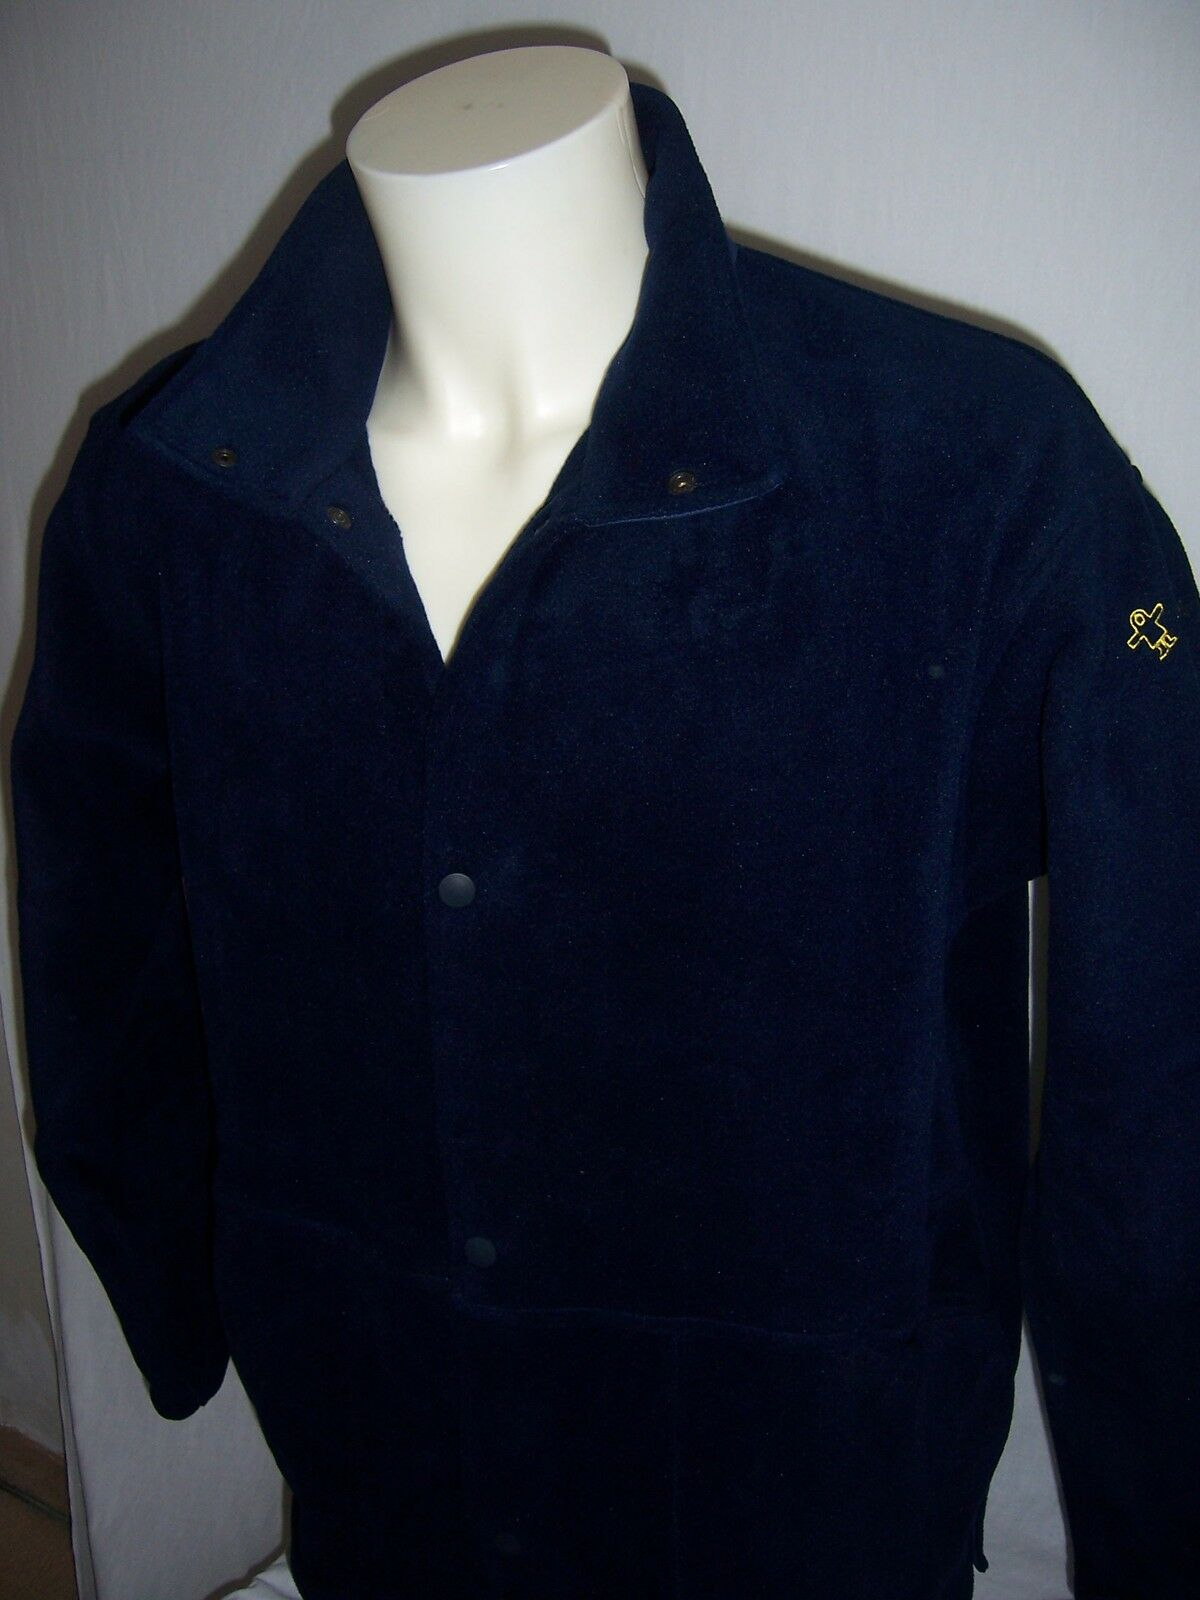 FOURRURE Polaire Guy L Cotten neuf Made in France taille L Guy ou XL coloris marine 5bdae8